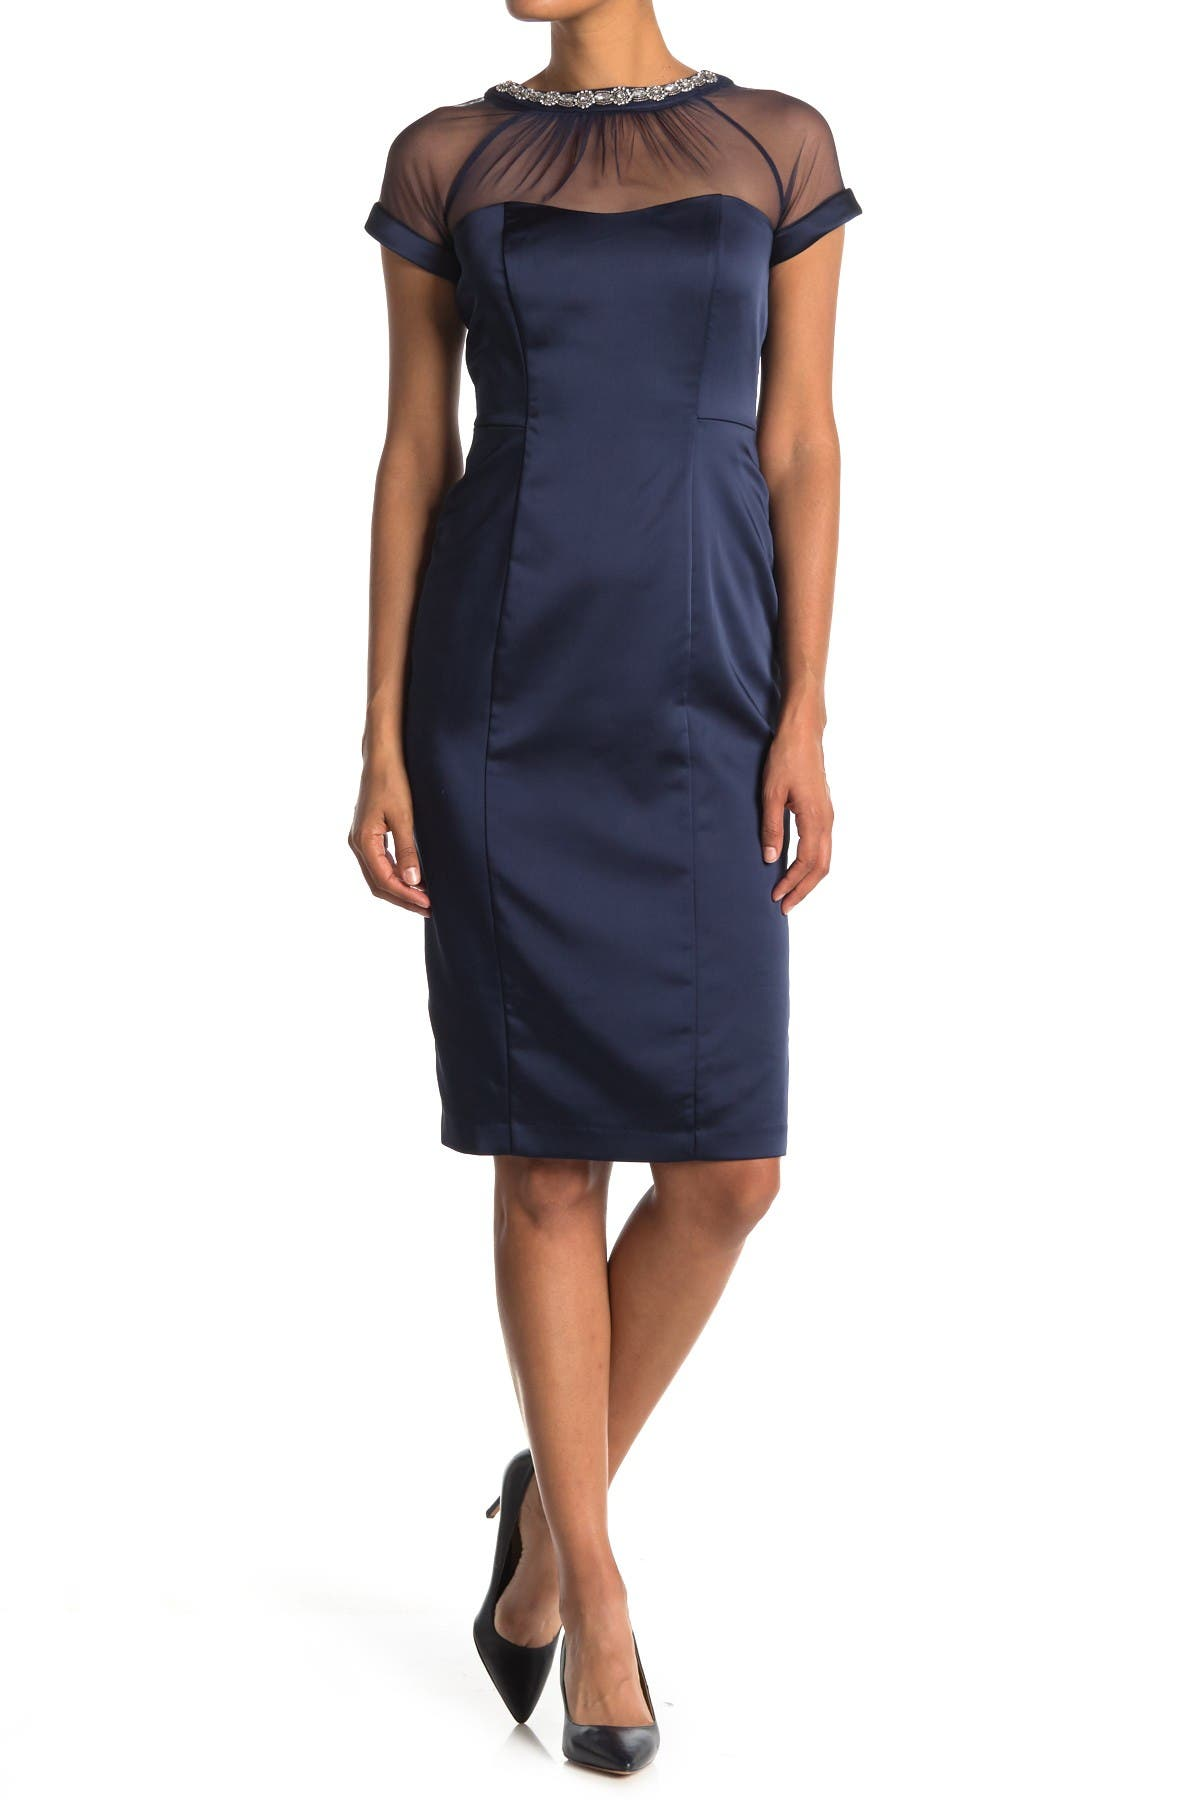 Image of Maggy London Illusion Dress